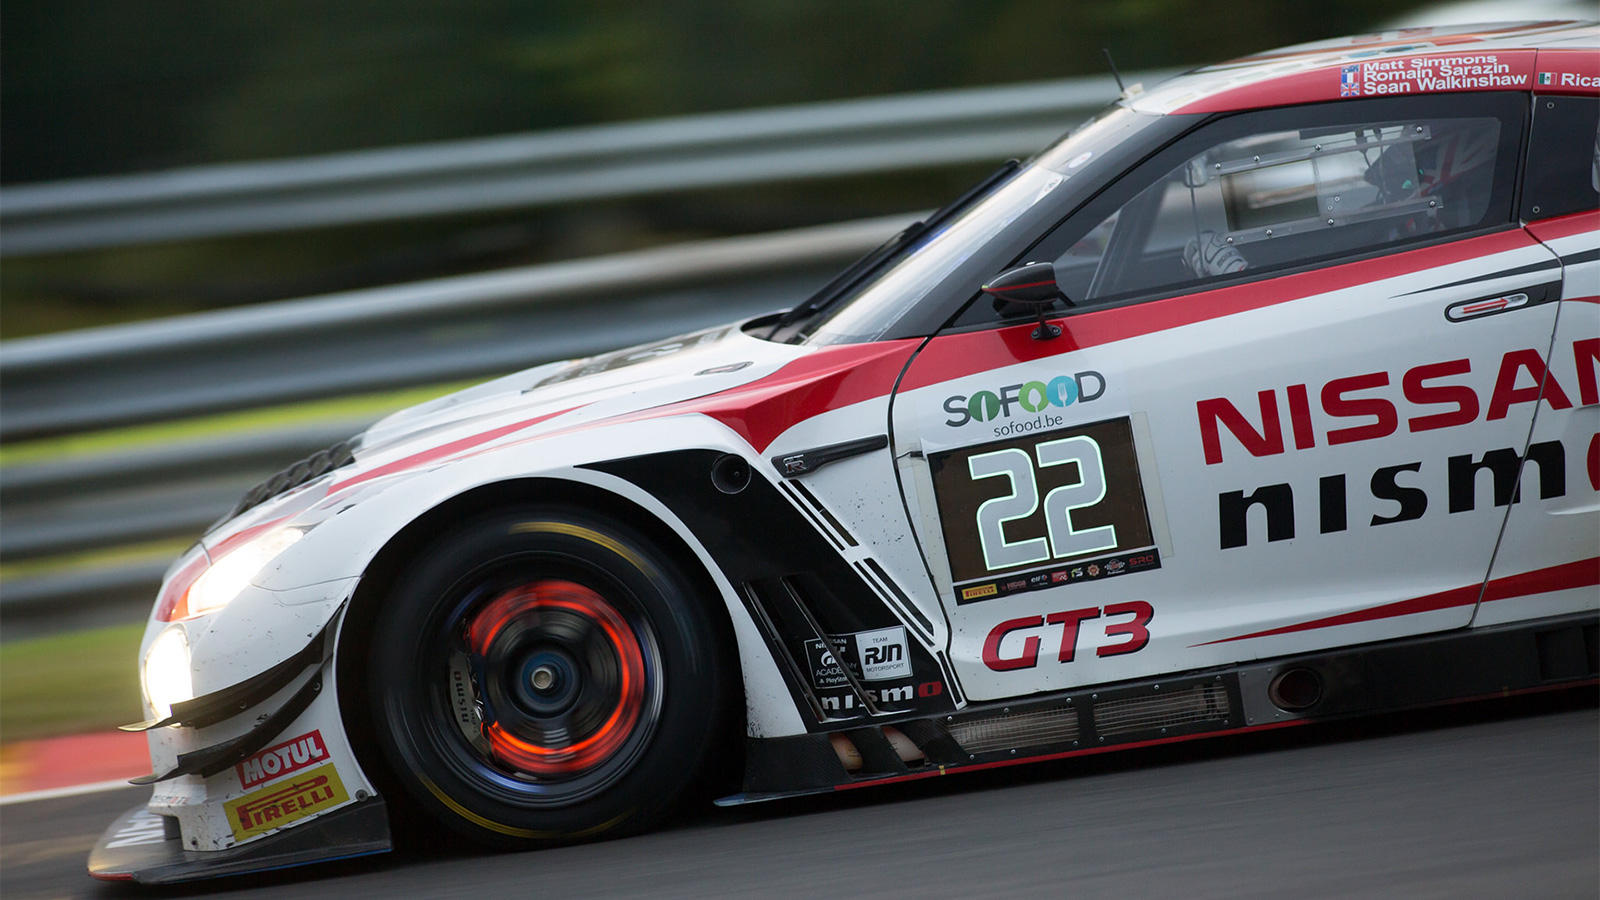 Sean is hoping Hungaroring will provide an opportunity to chalk-up his first overall top 10 finish of the Sprint Cup season.